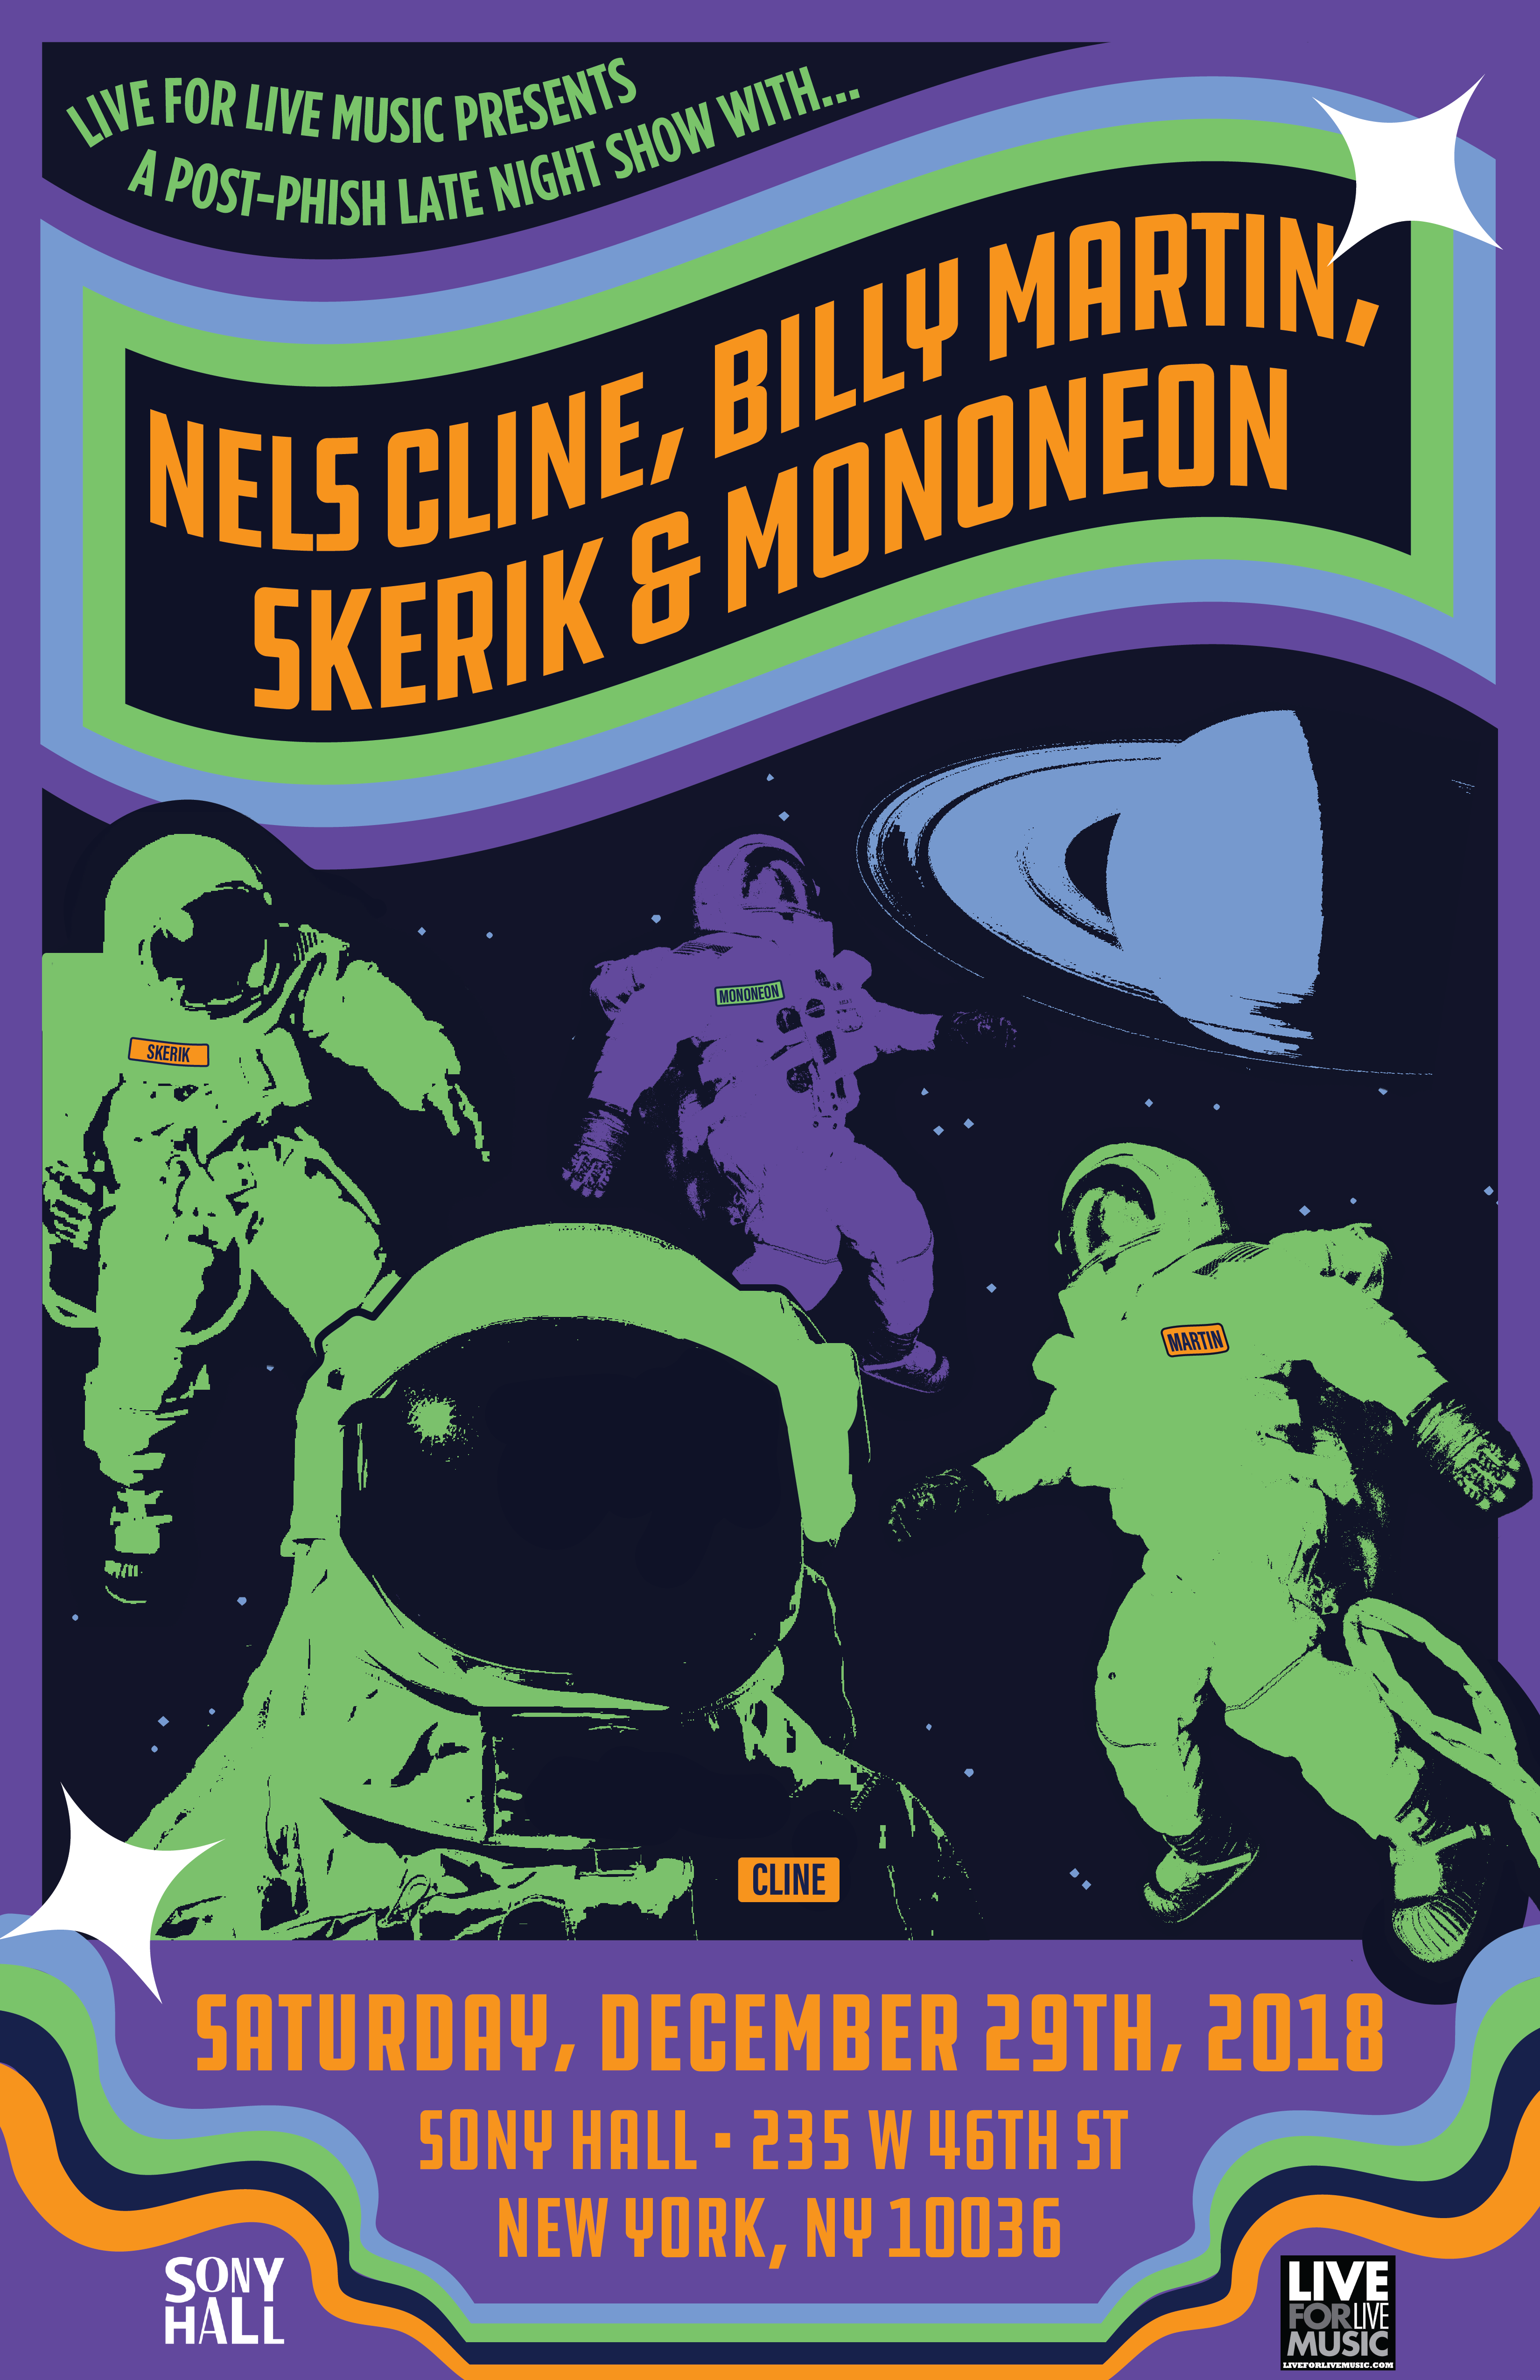 Skerik, Billy Martin, Nels Cline & Mononeon-Post Phish Party Poster Art